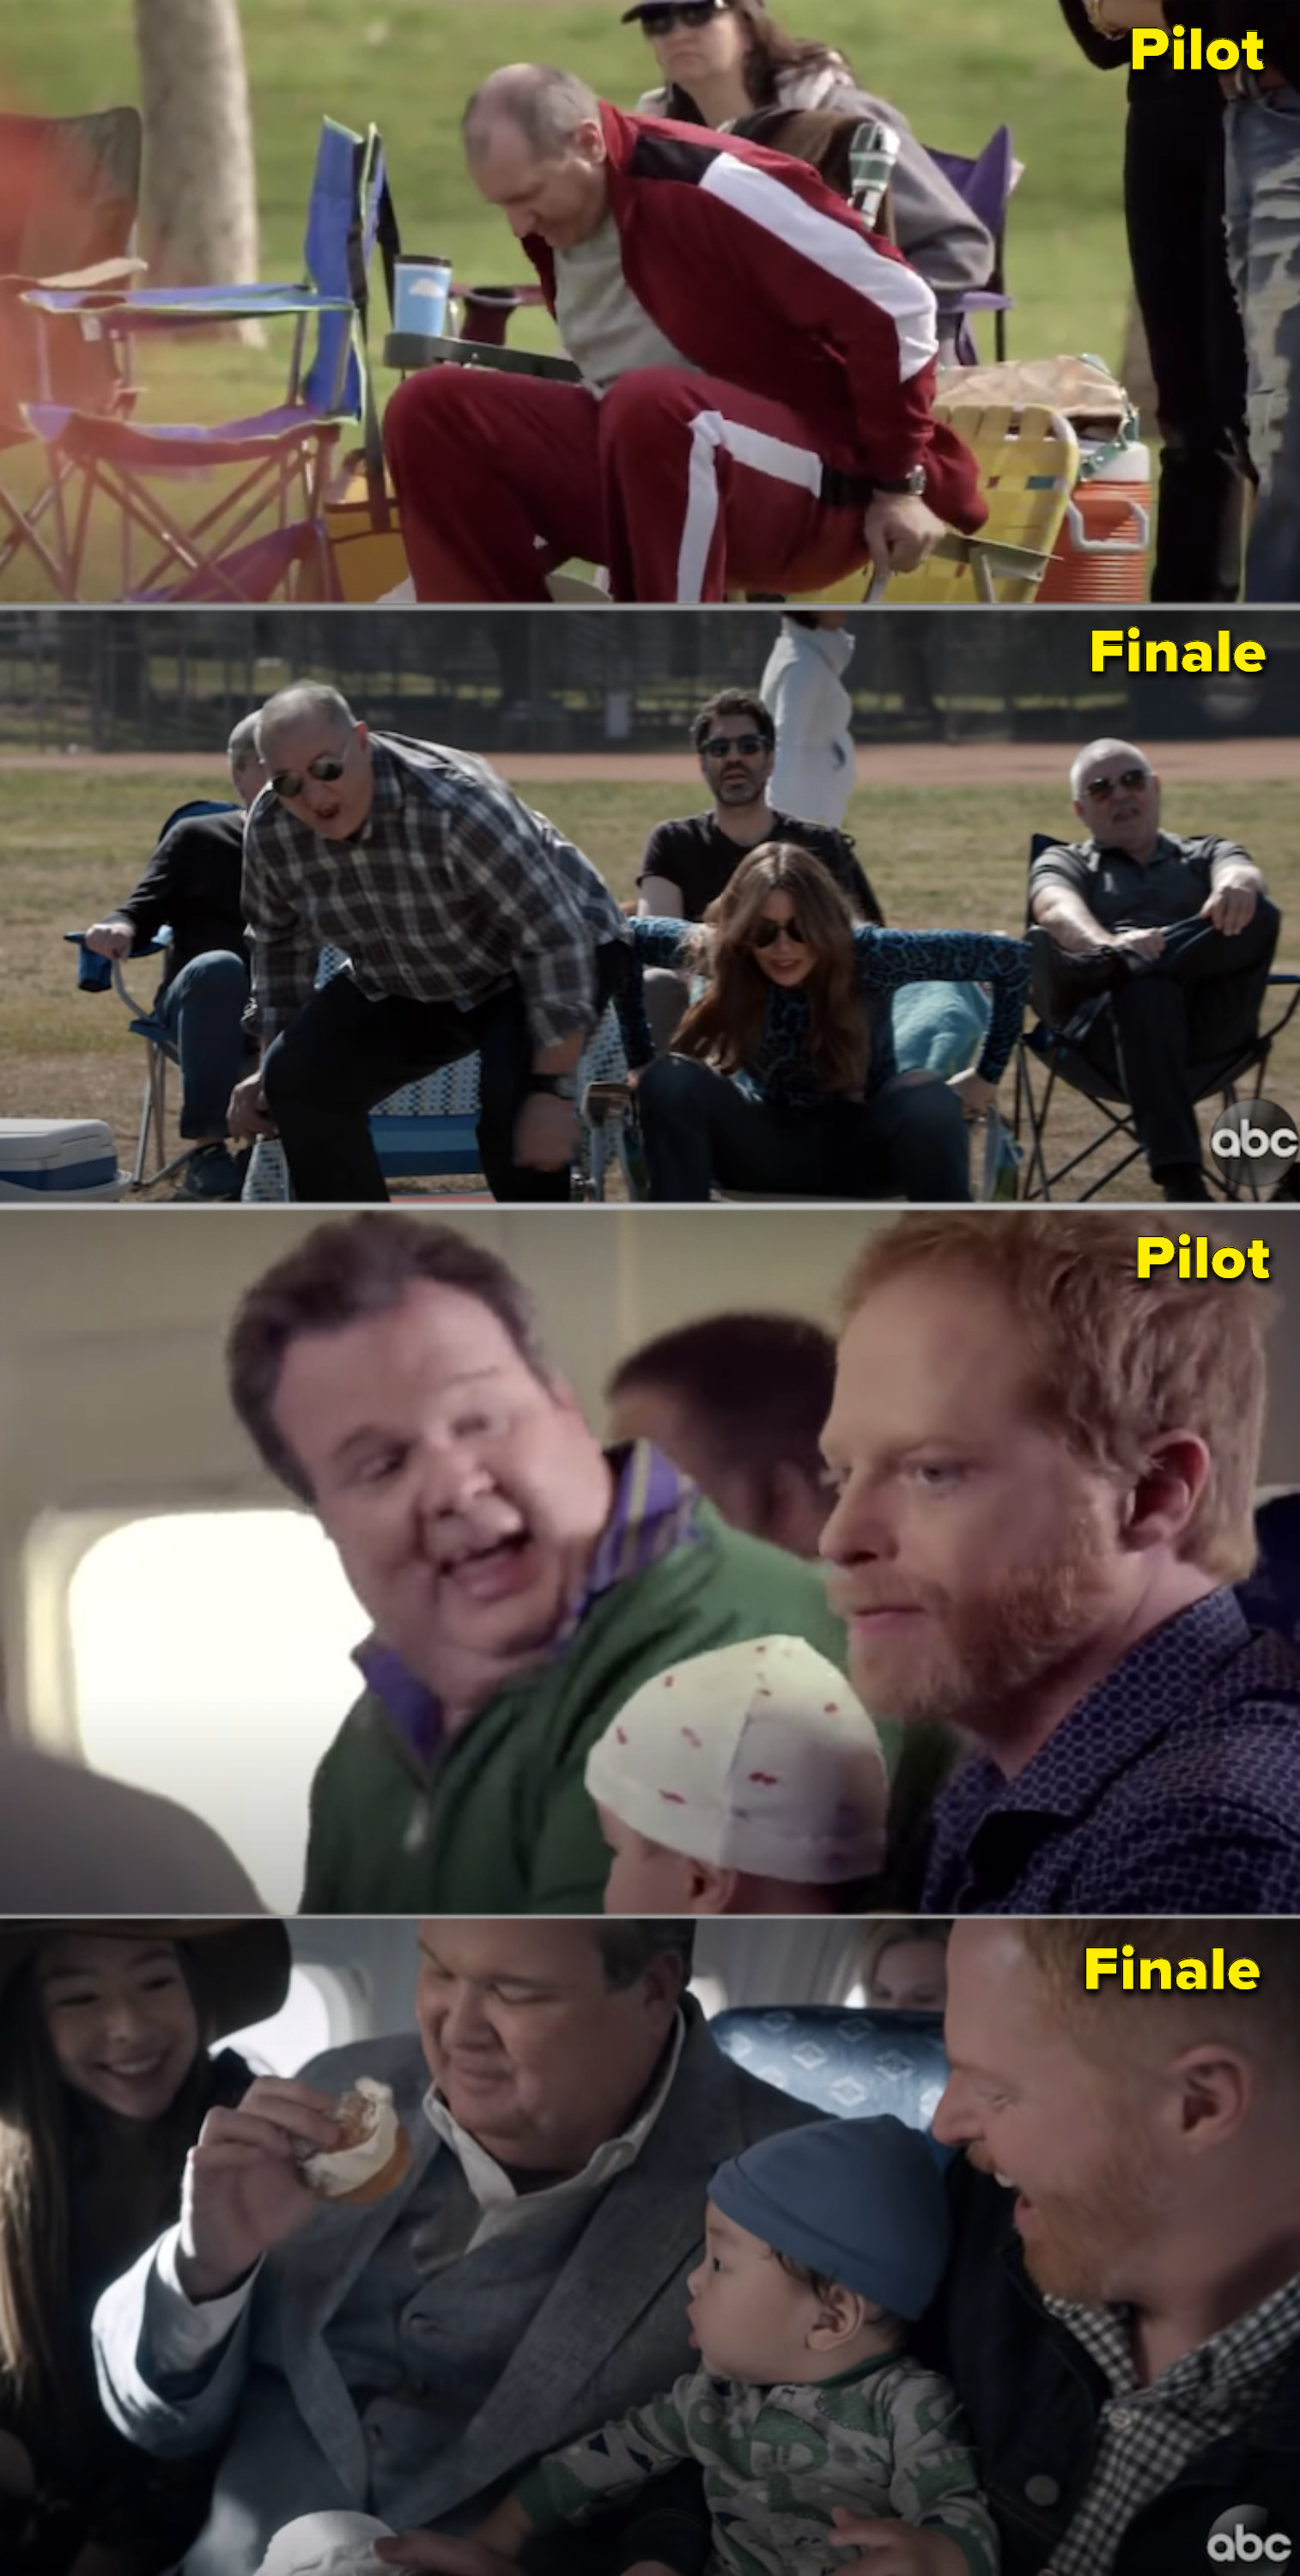 Side-by-side comparisons of the pilot and finale with Jay and Gloria at a soccer game, vs. Cam and Mitchel on a plane bringing their new baby home